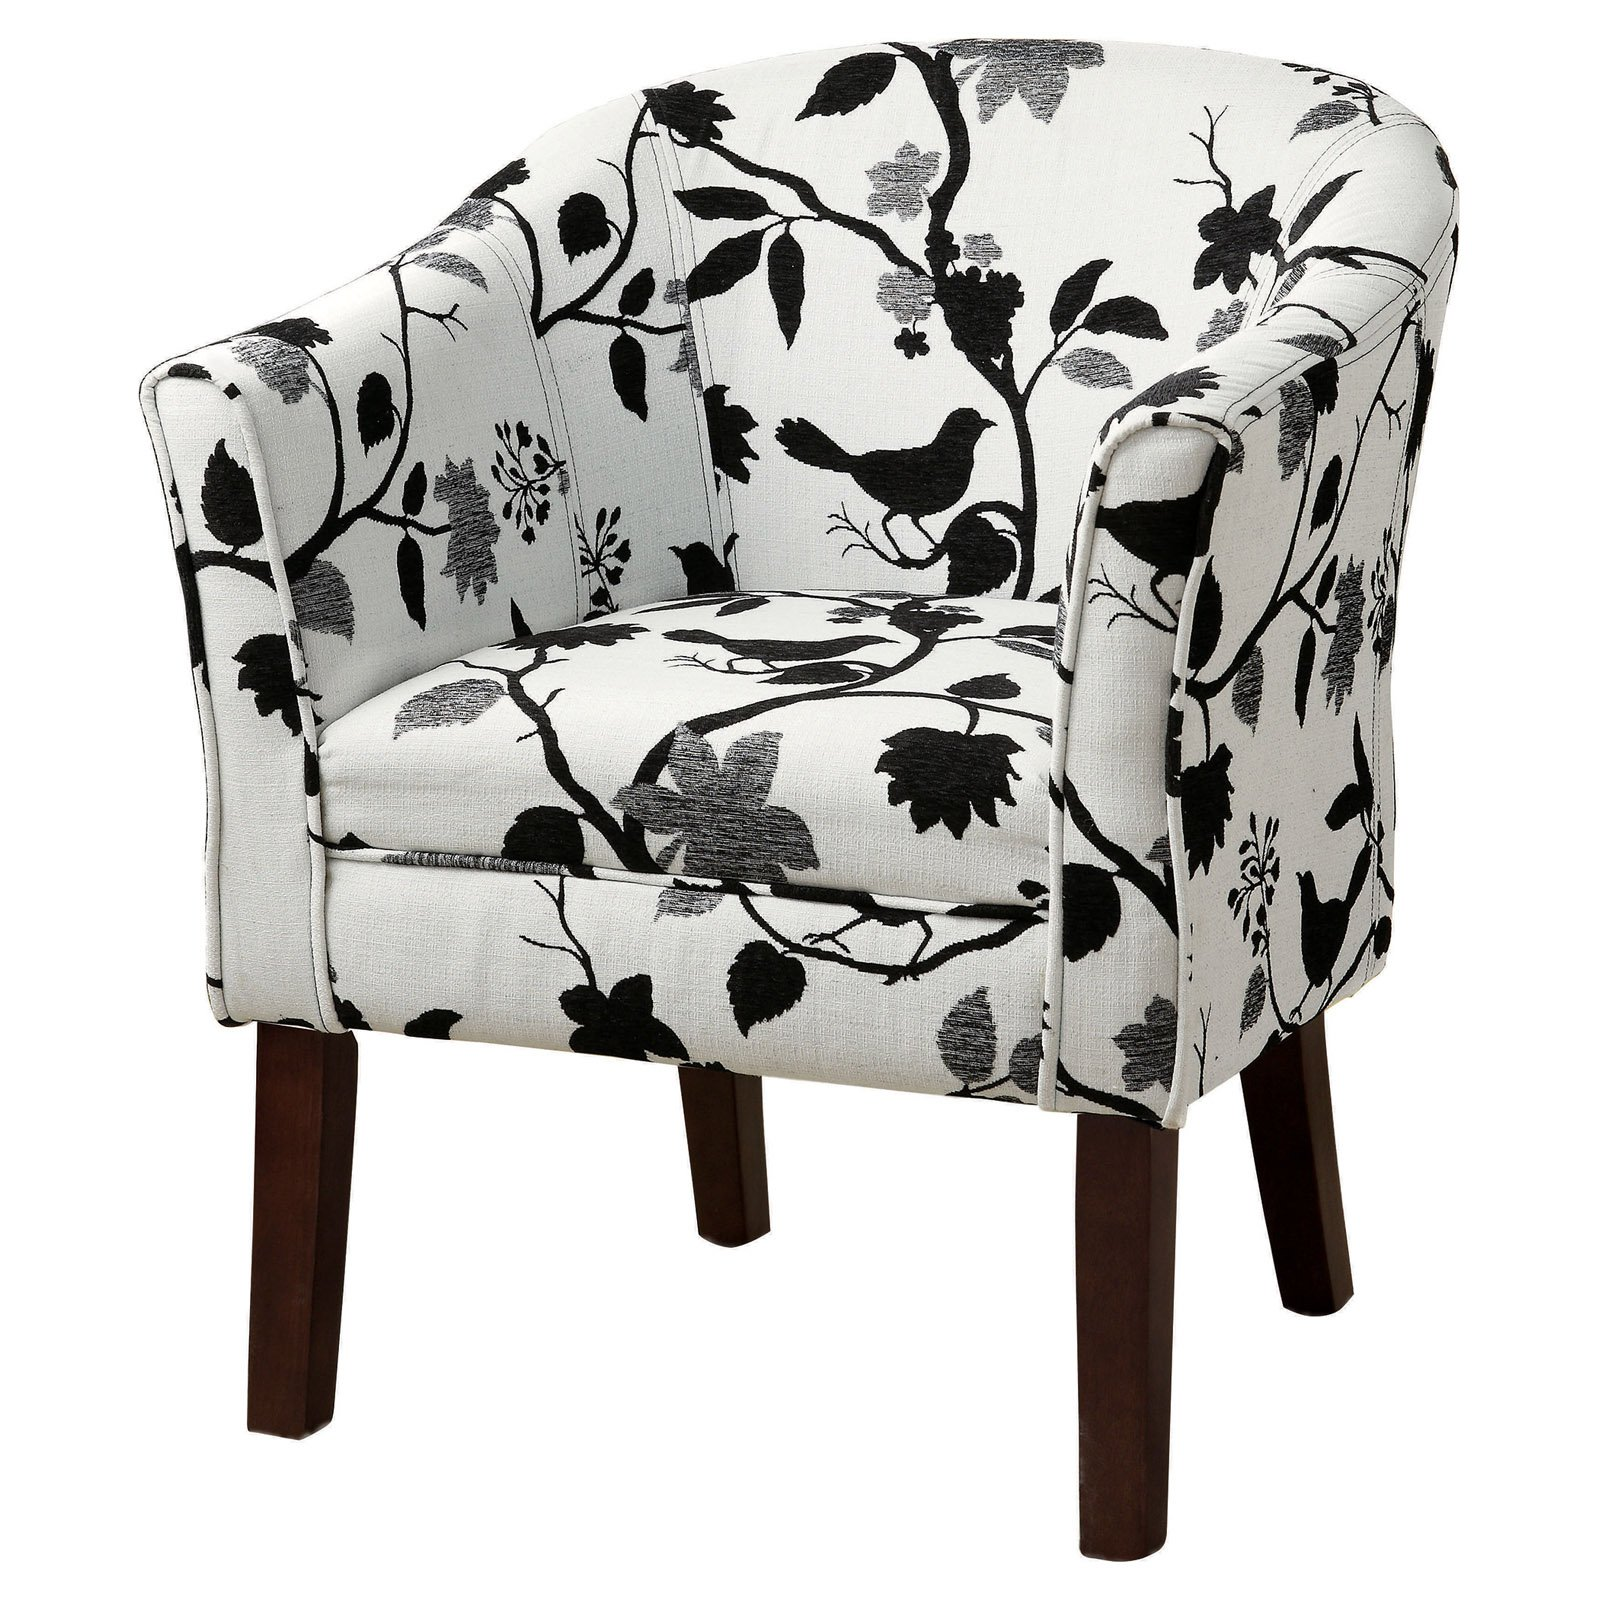 Coaster Accent Chair Coaster Company Accent Chair Black And White